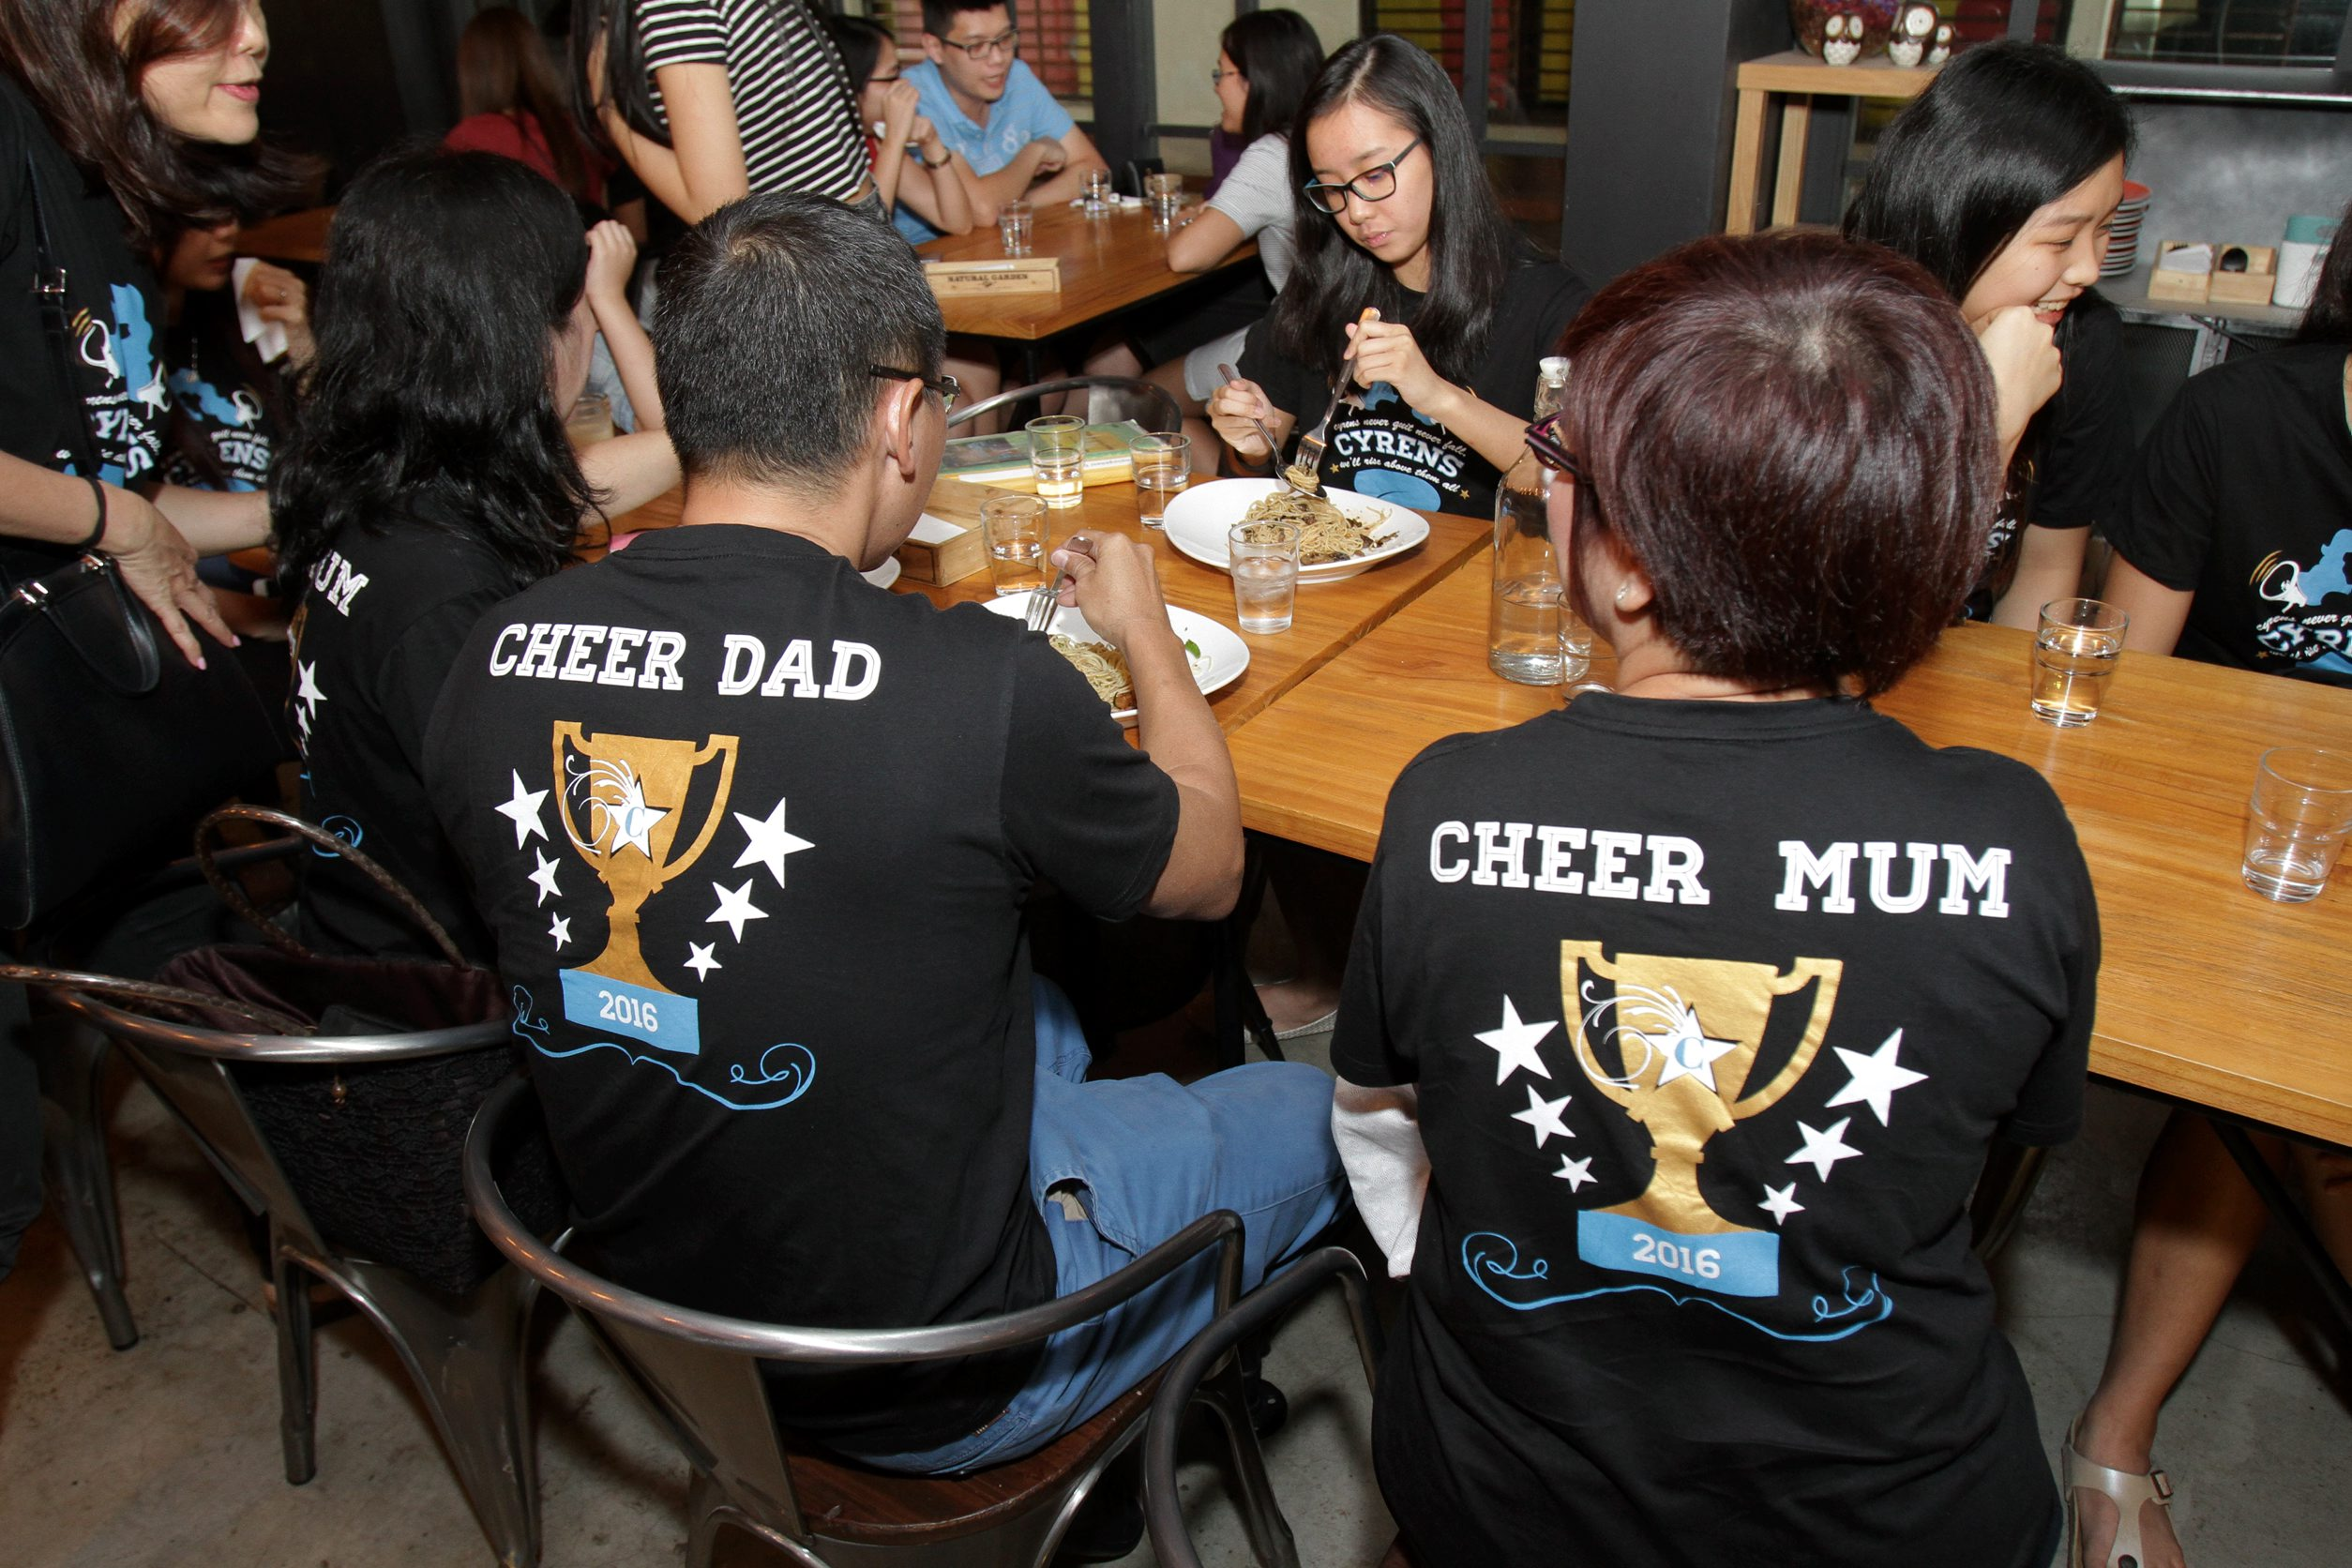 Even the parents of the girls have their own Cheer Mom and Cheer Dad T-shirts.